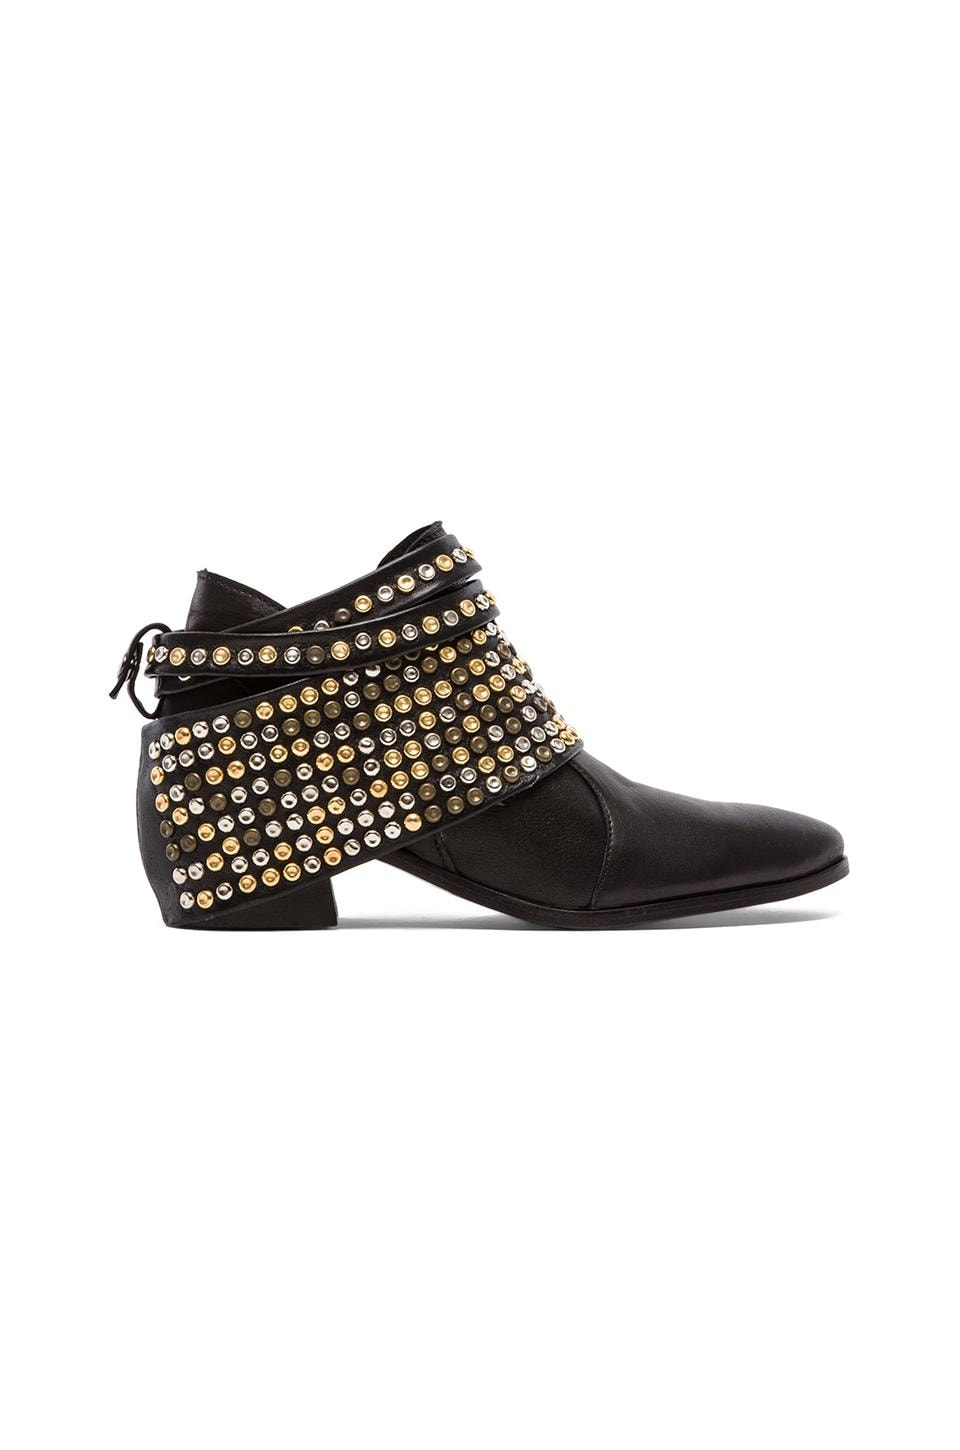 MODERN VICE COLLECTION Chloe Studded Removable Hardware Bootie in Black